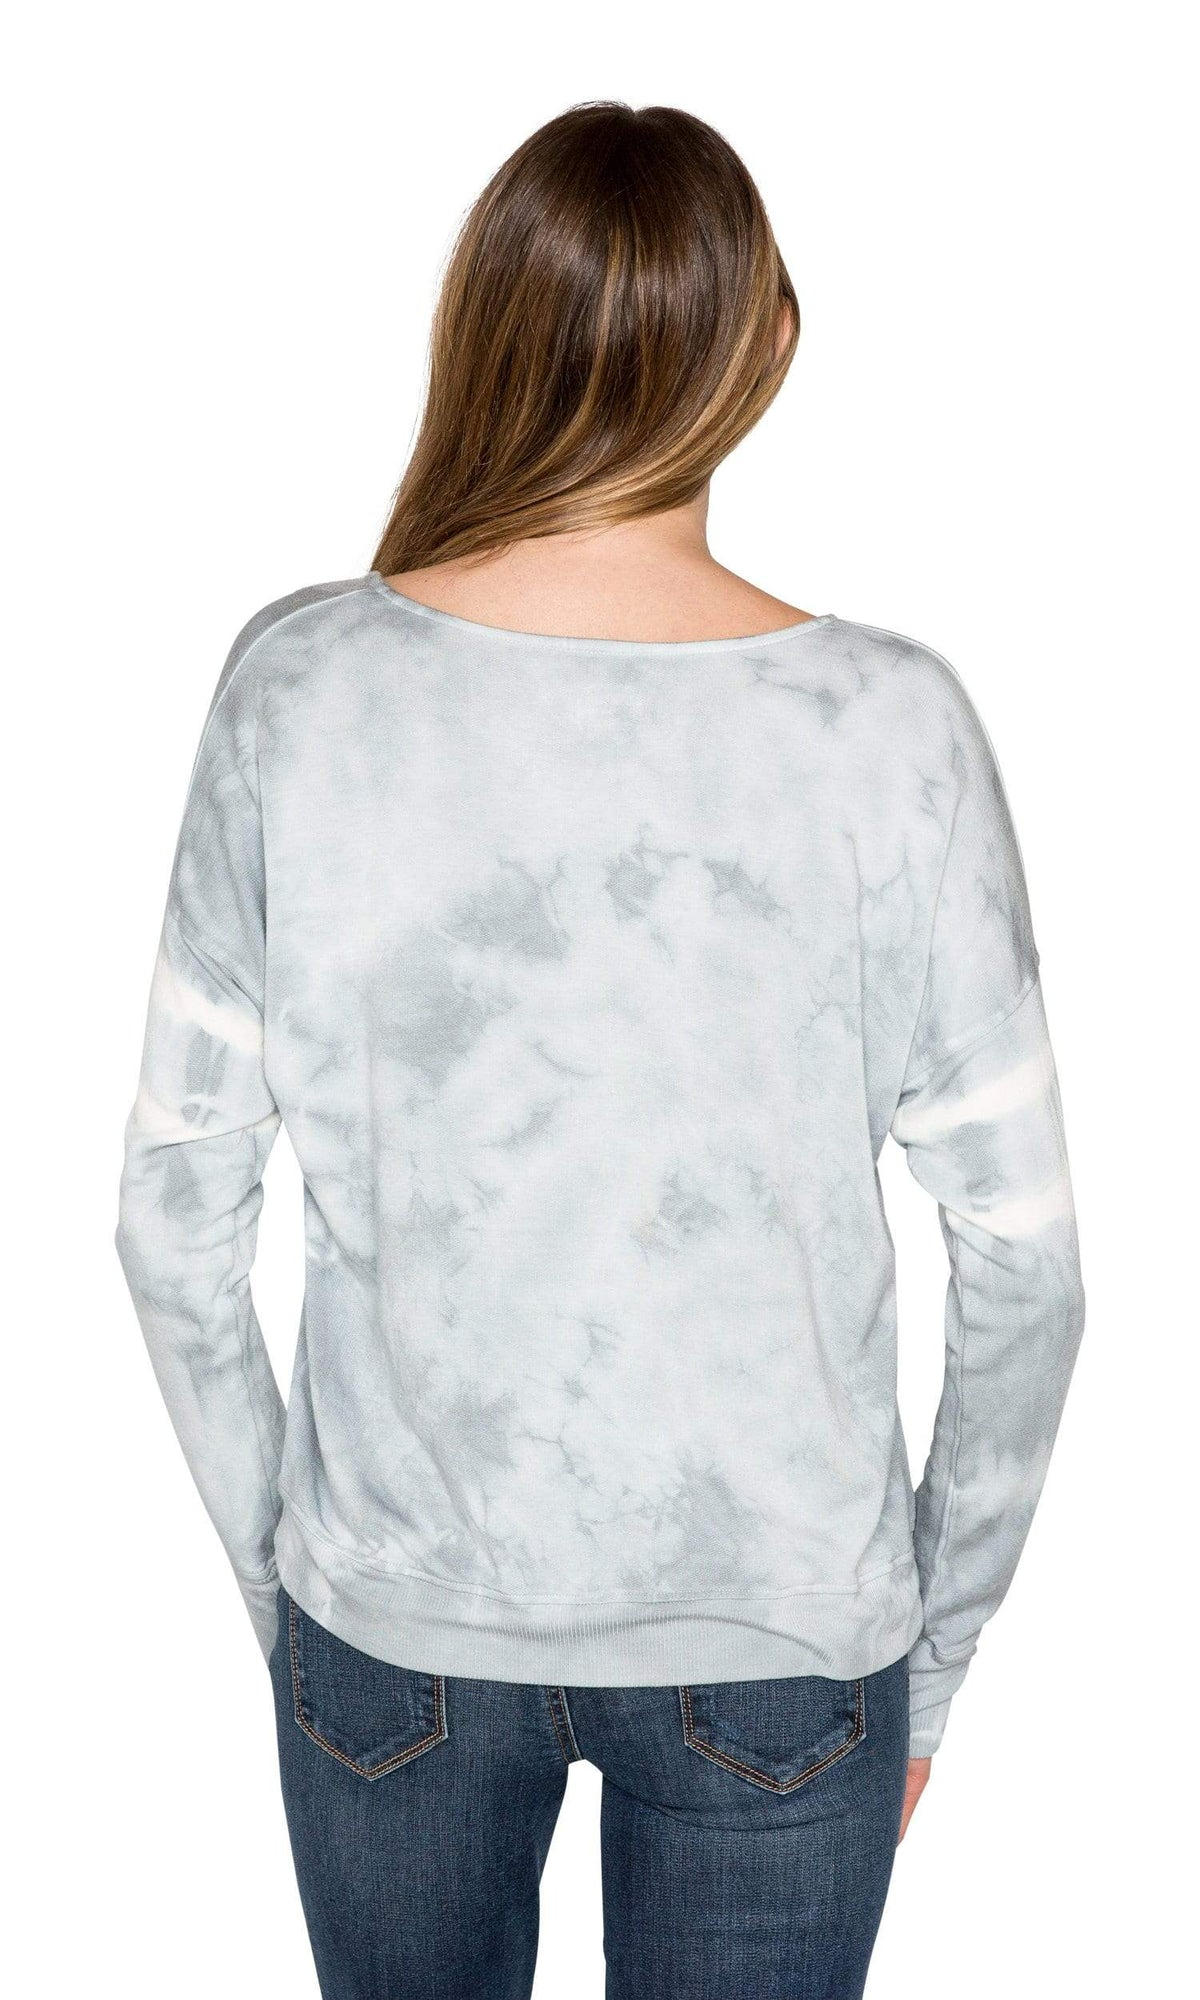 Sundown by River + Sky Caffeine Queen Sweatshirt